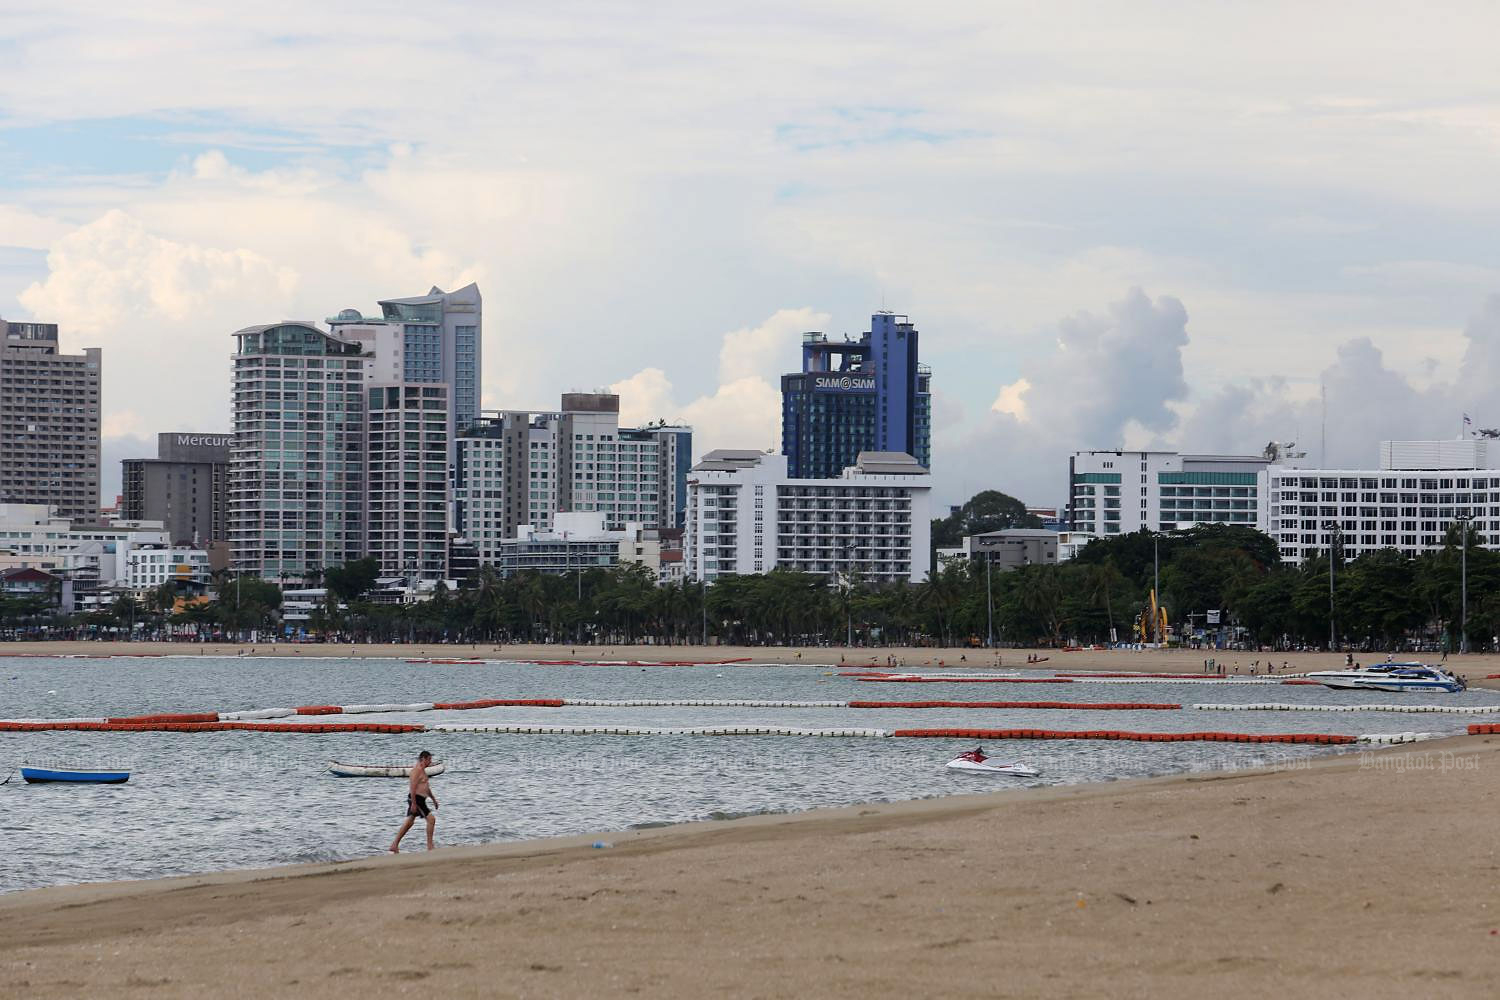 A lone tourist walks on a beach in Pattaya. Purchasing power is a concern for domestic tourism.(Photo by Wichan Charoenkiatpakul)